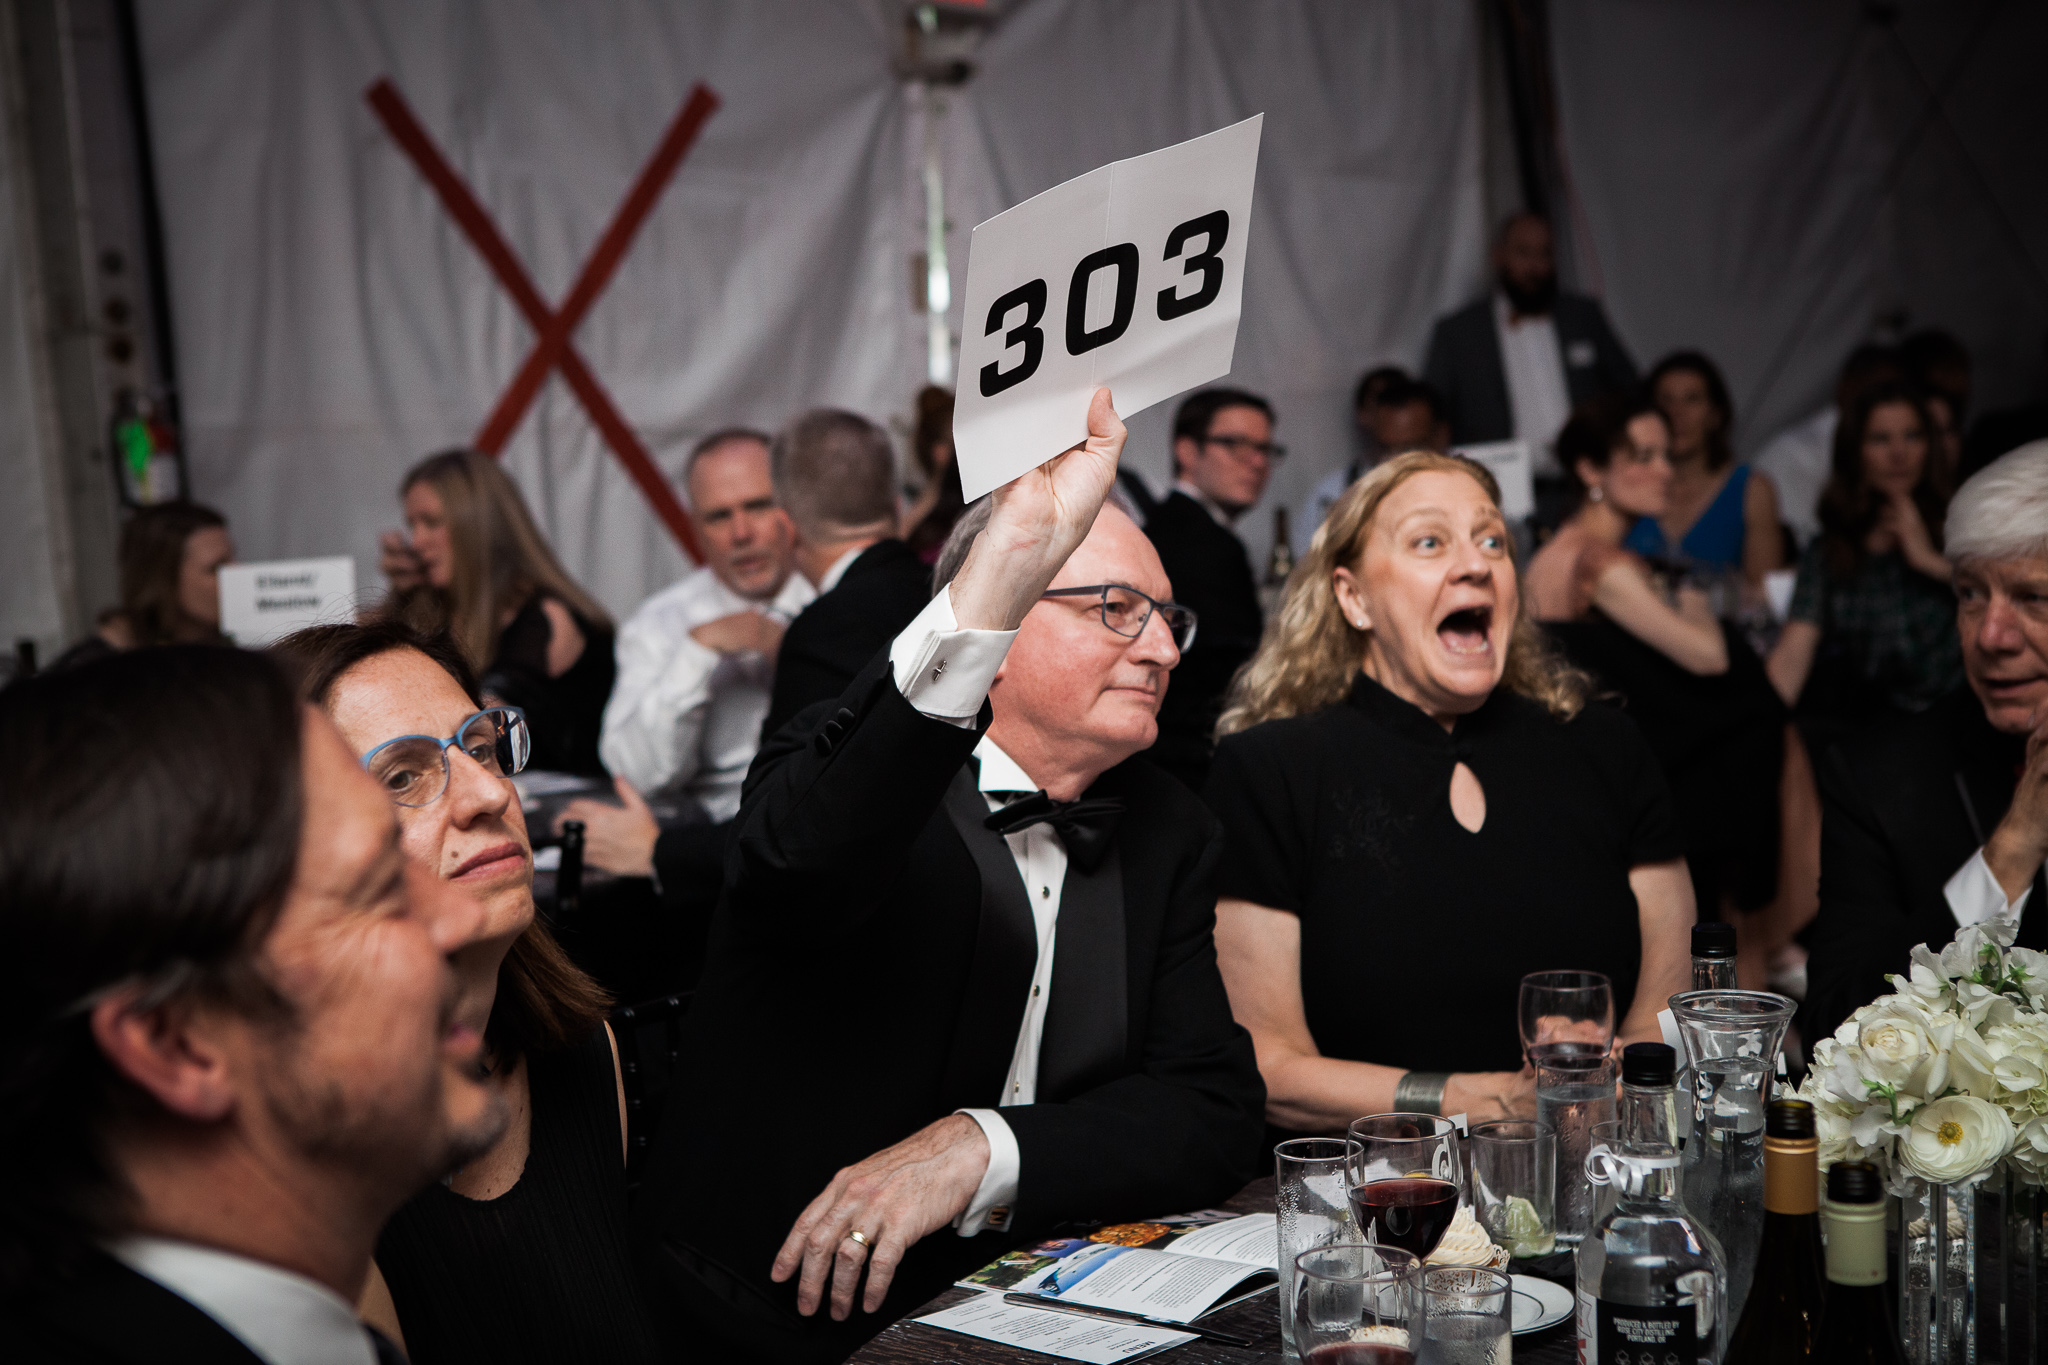 2019 OMSI Gala_Dinner and Fundraising 150_by KLiK Concepts_web res.jpg